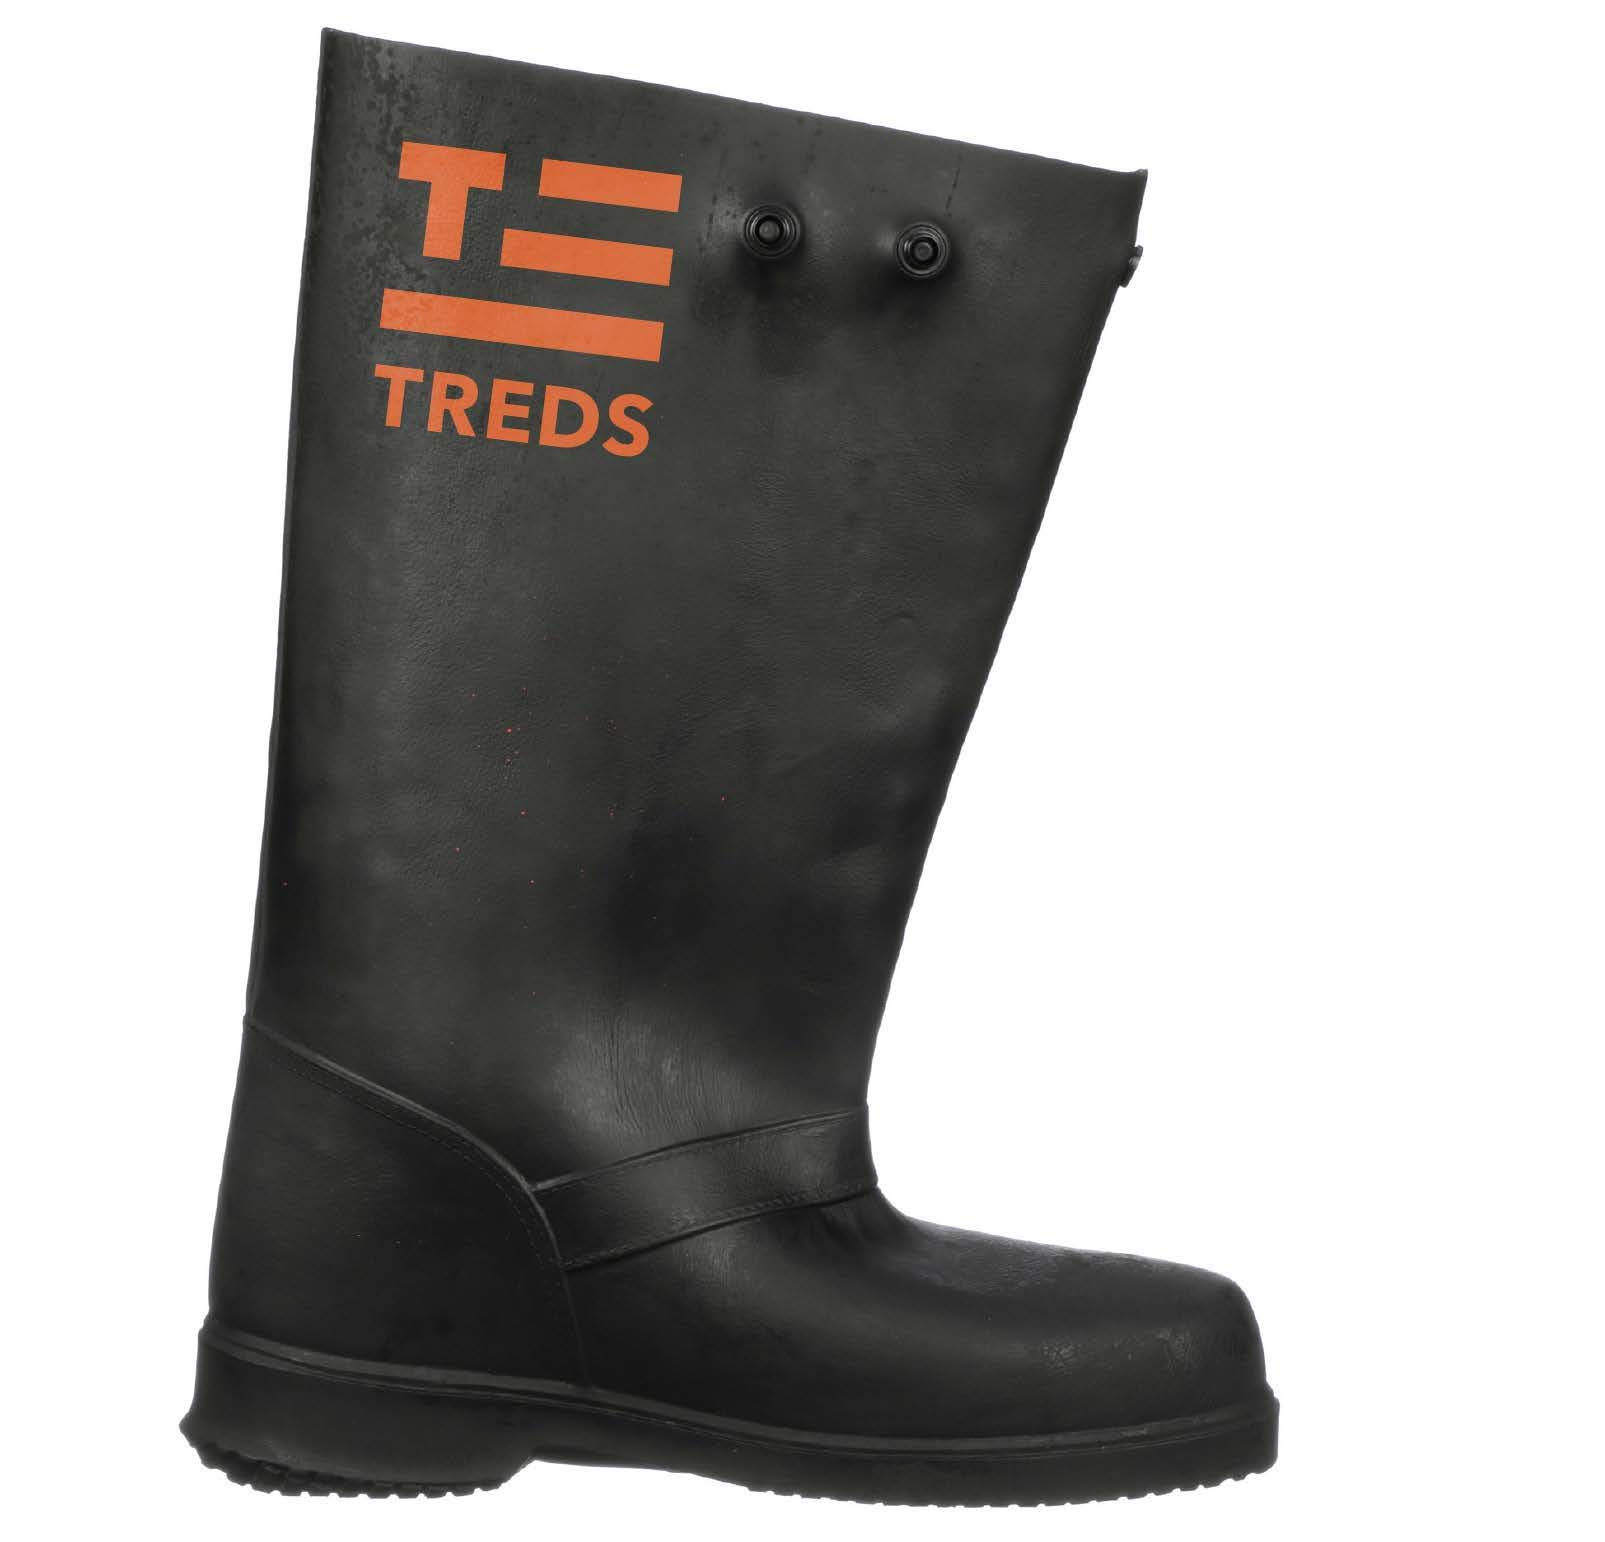 TREDS 13850 Super Tough 6 Stretch Rubber Pull-On Overshoes One Pair Small